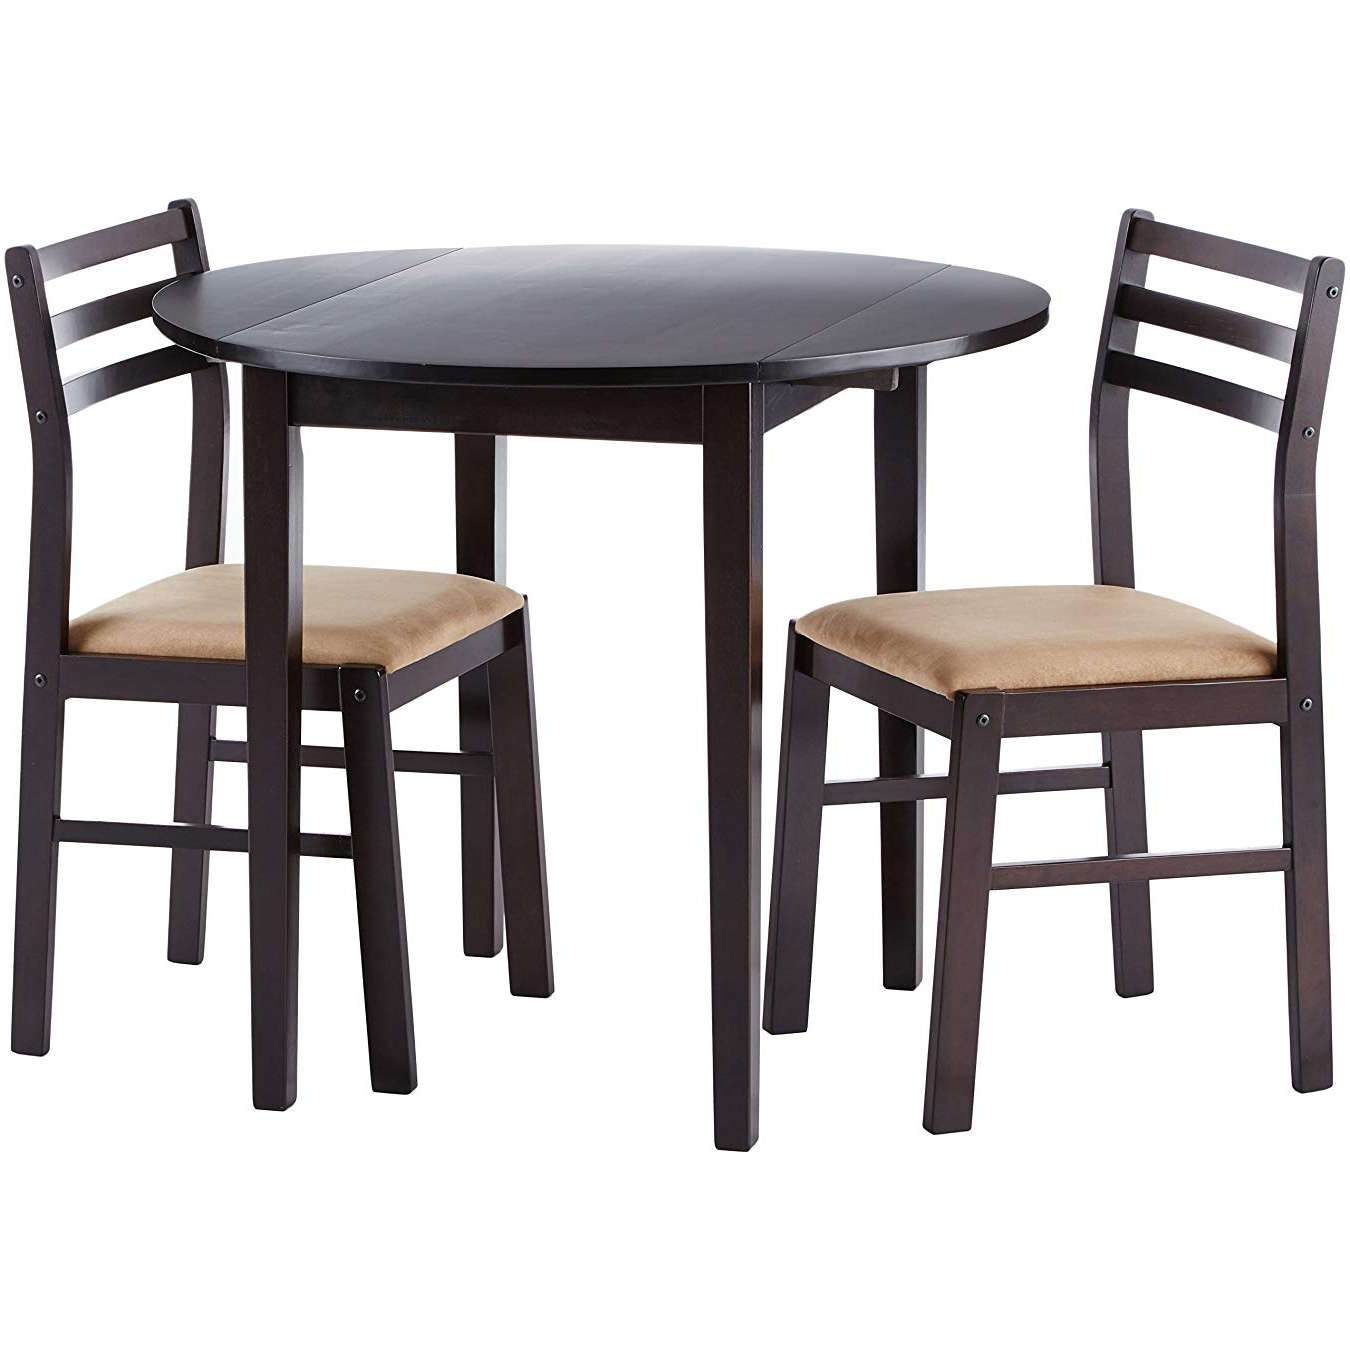 Well Liked Upbring Marketplace: Donate To Families In Need Via Wishlists In Nutter 3 Piece Dining Sets (View 24 of 25)